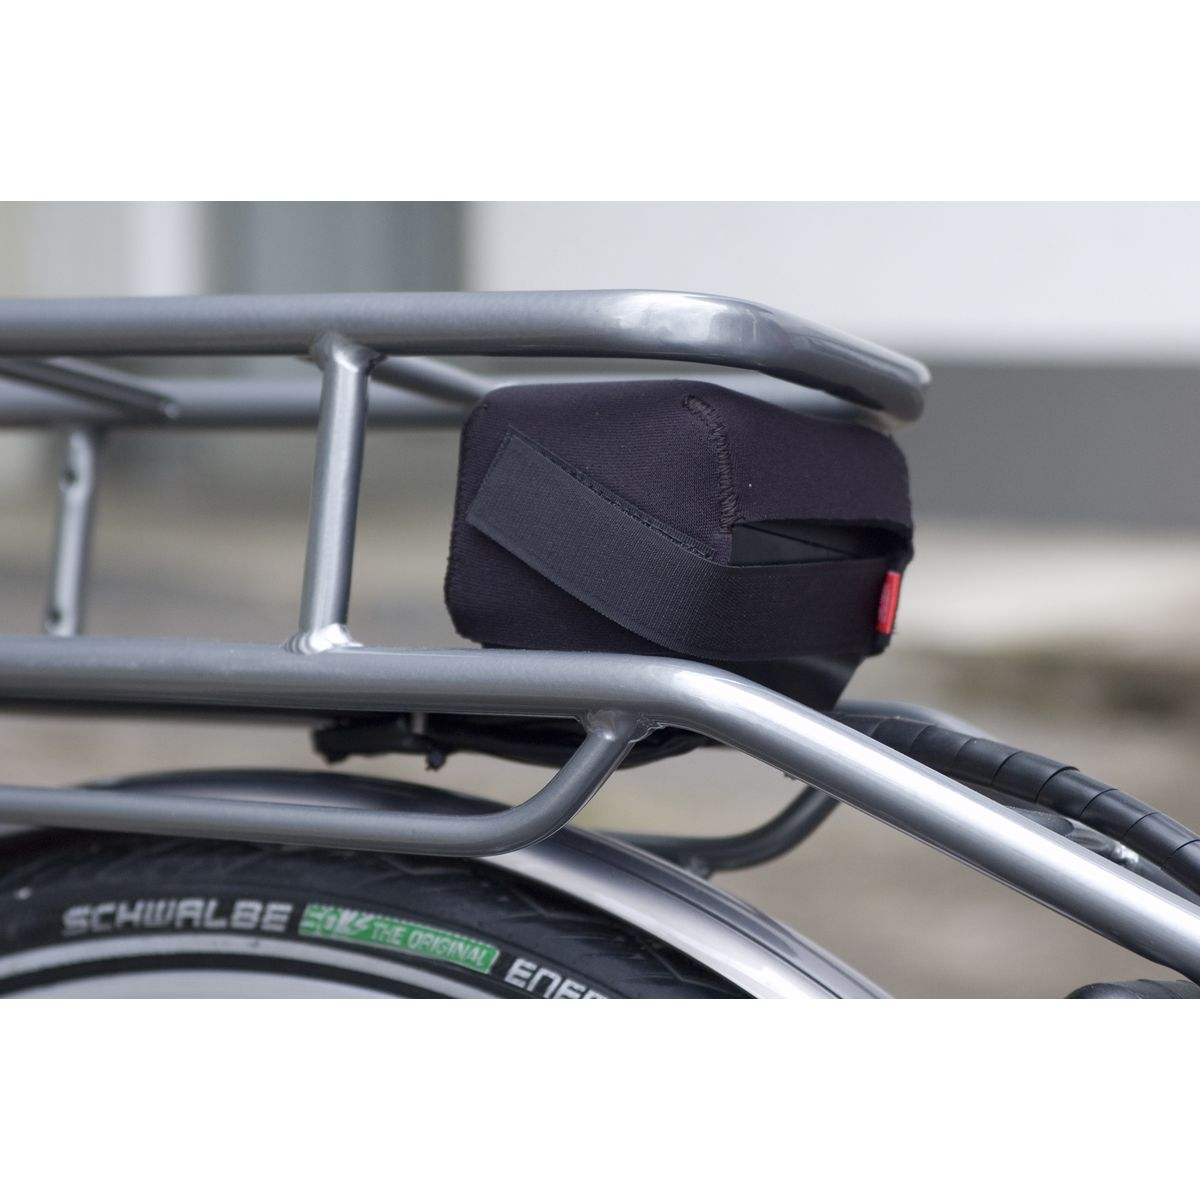 FAHRER Electric Cap L luggage carrier contact protection | Hovedbeklædning